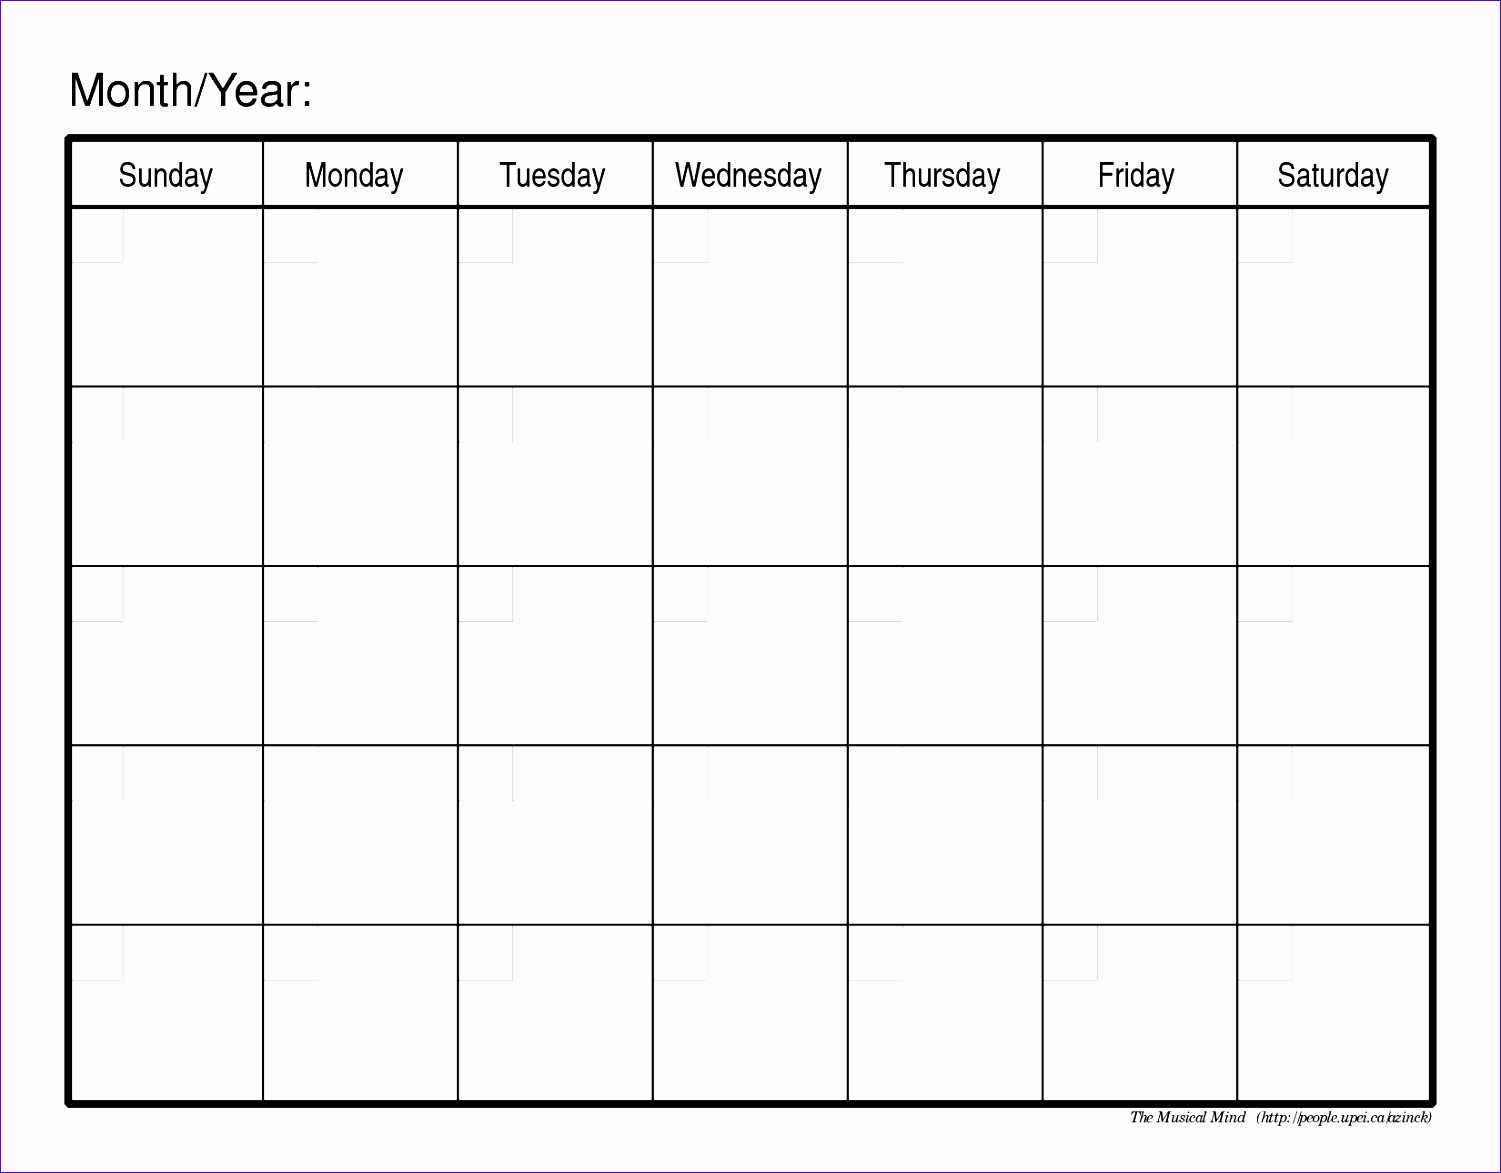 monthly schedule template 15011173